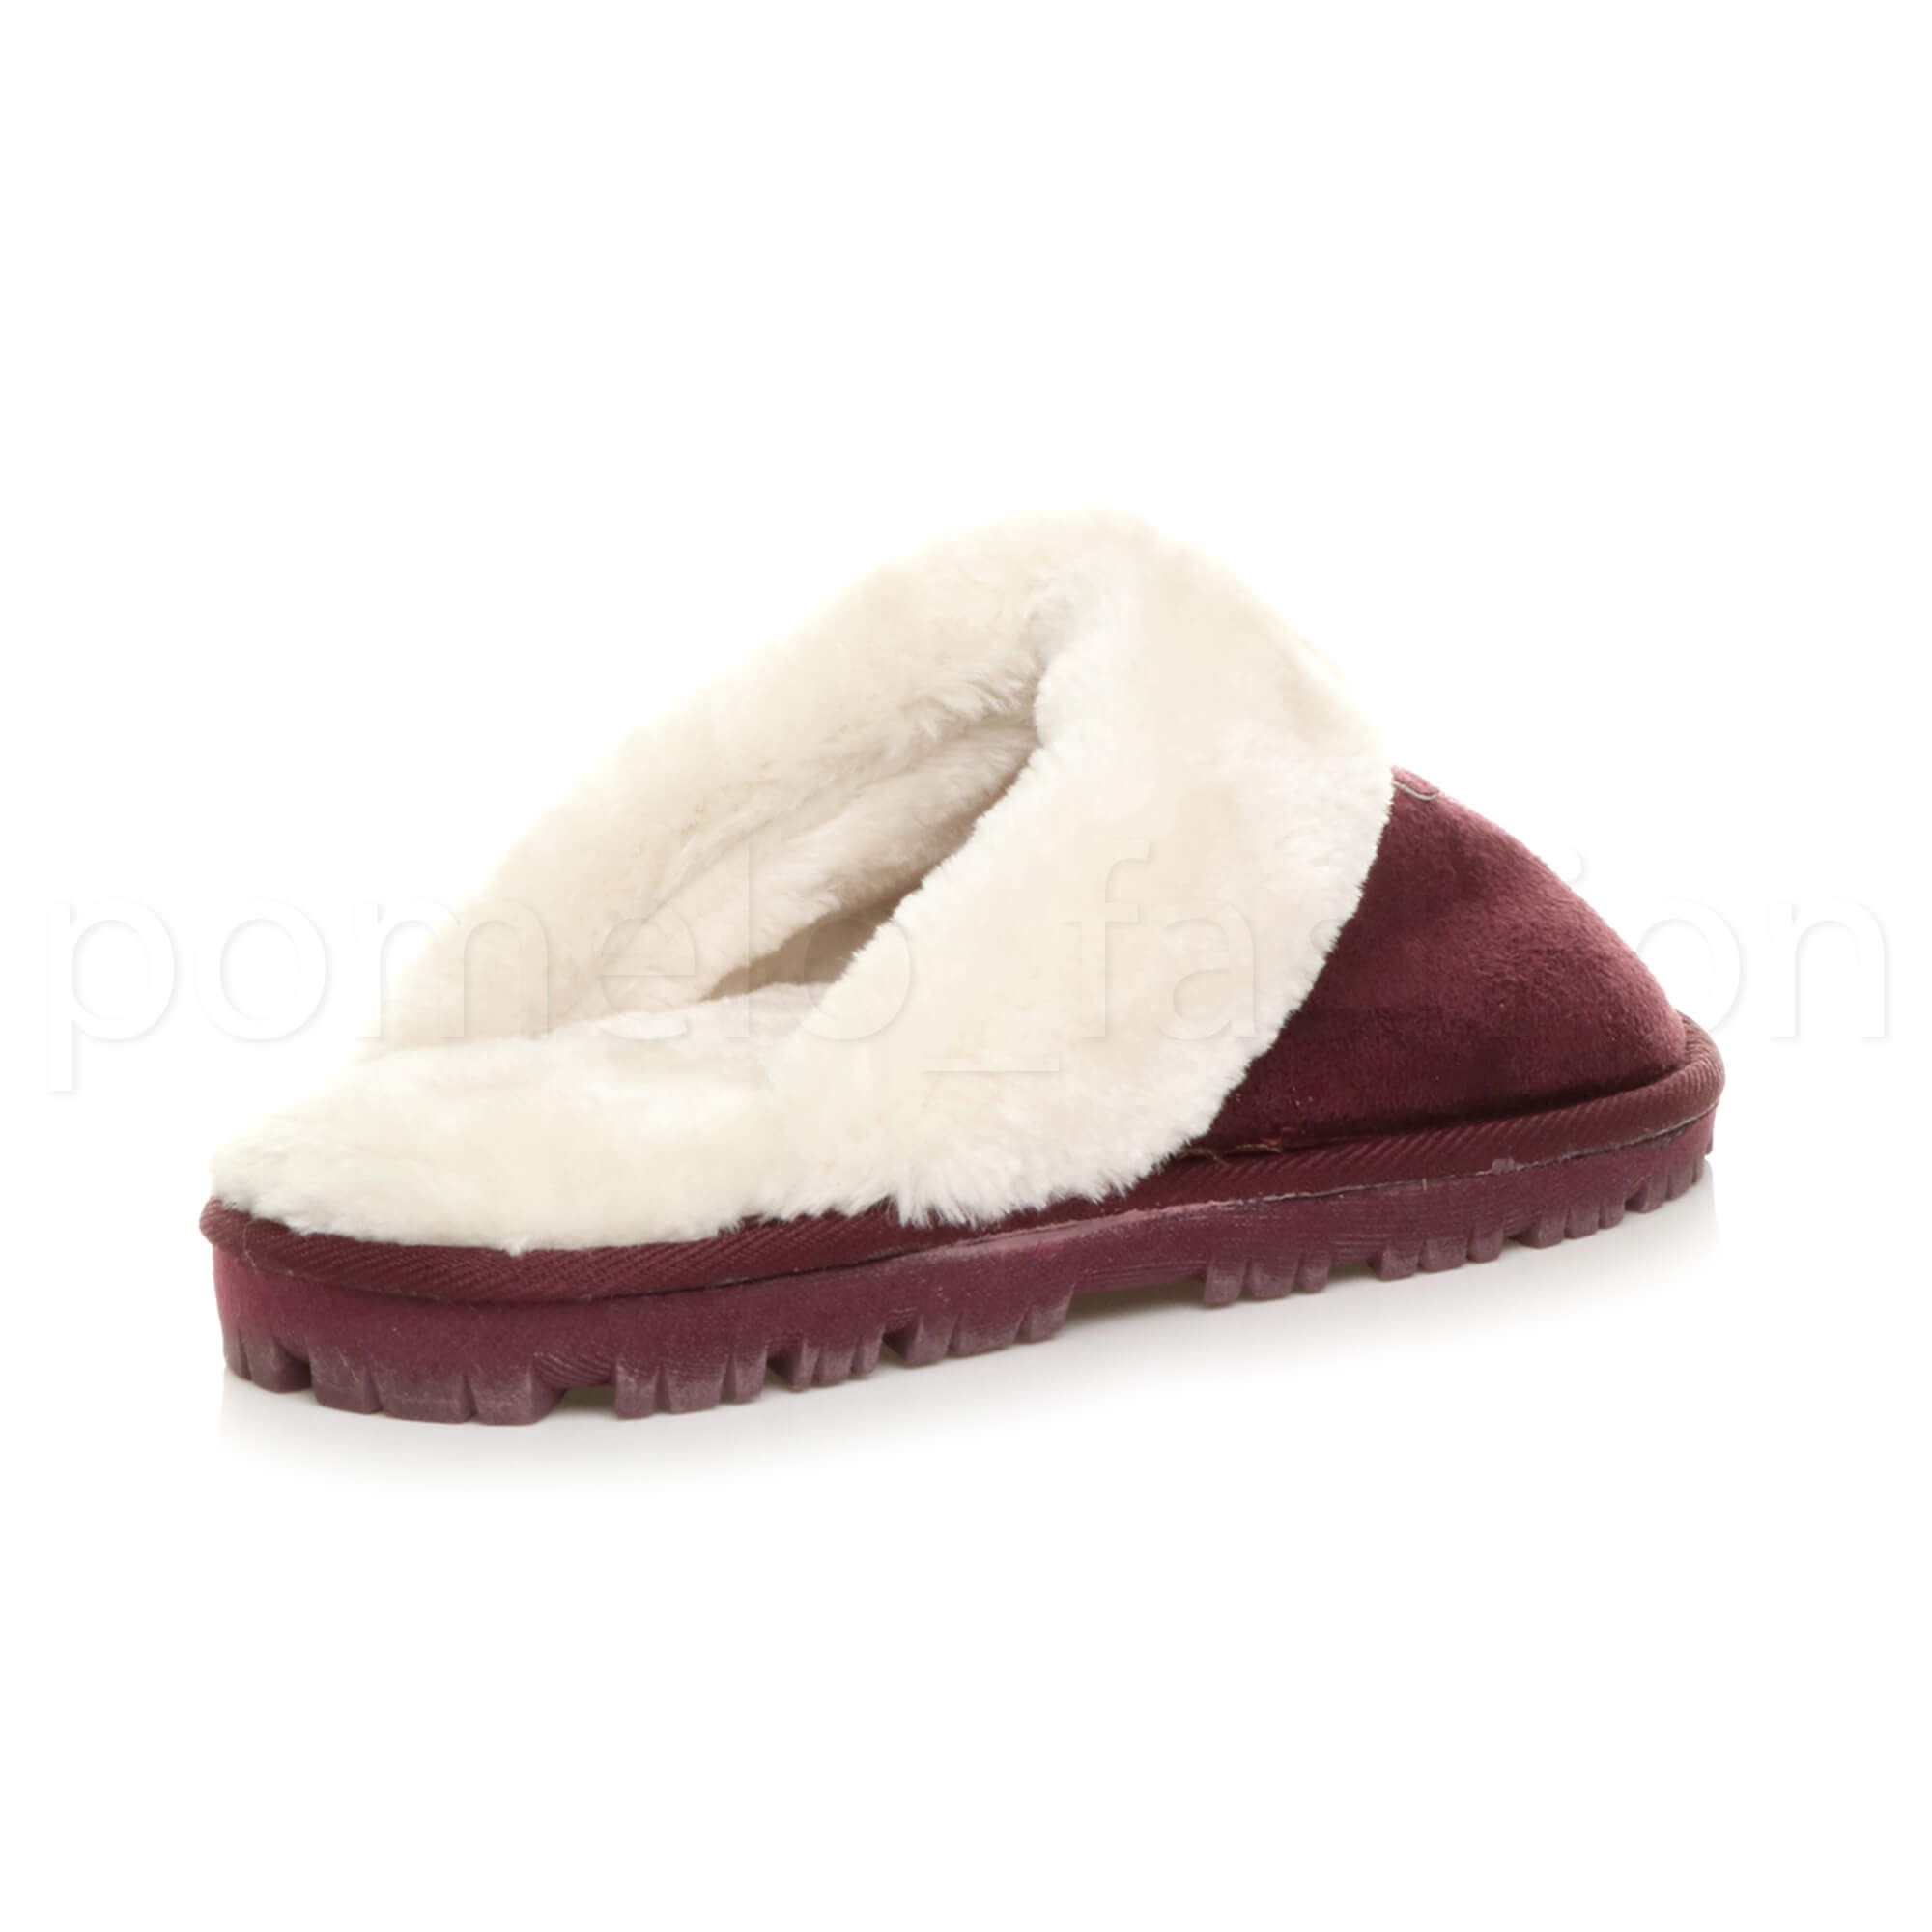 WOMENS-LADIES-FLAT-FUR-LINED-COMFORTABLE-WINTER-MULES-SLIPPERS-HOUSE-SHOES-SIZE thumbnail 40